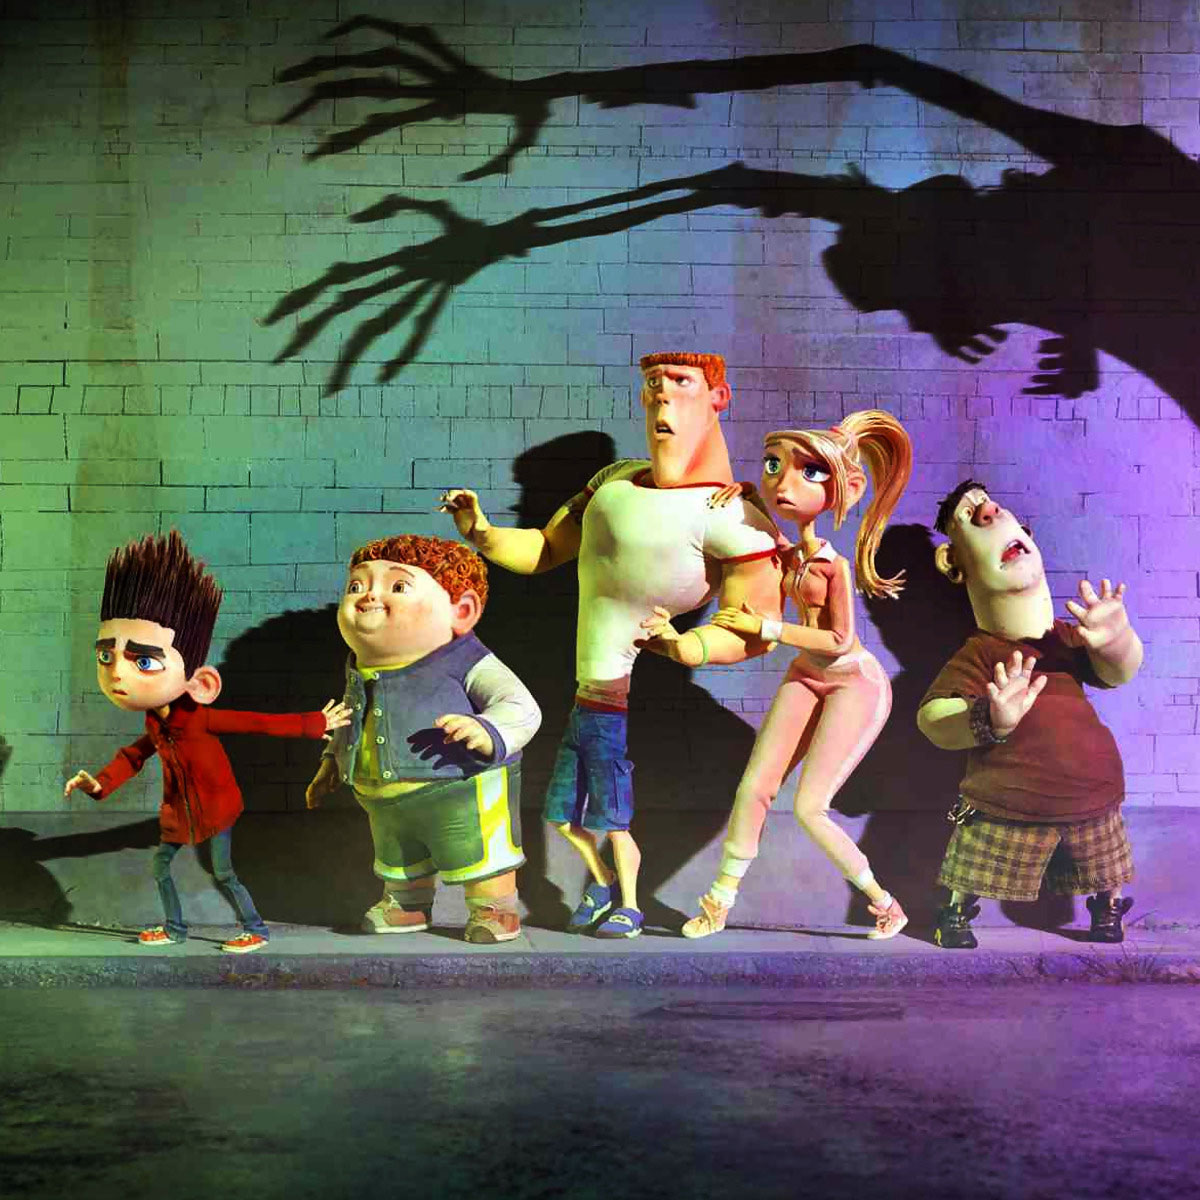 The Art of ParaNorman - Oct 6, 2012 – Feb 17, 2013